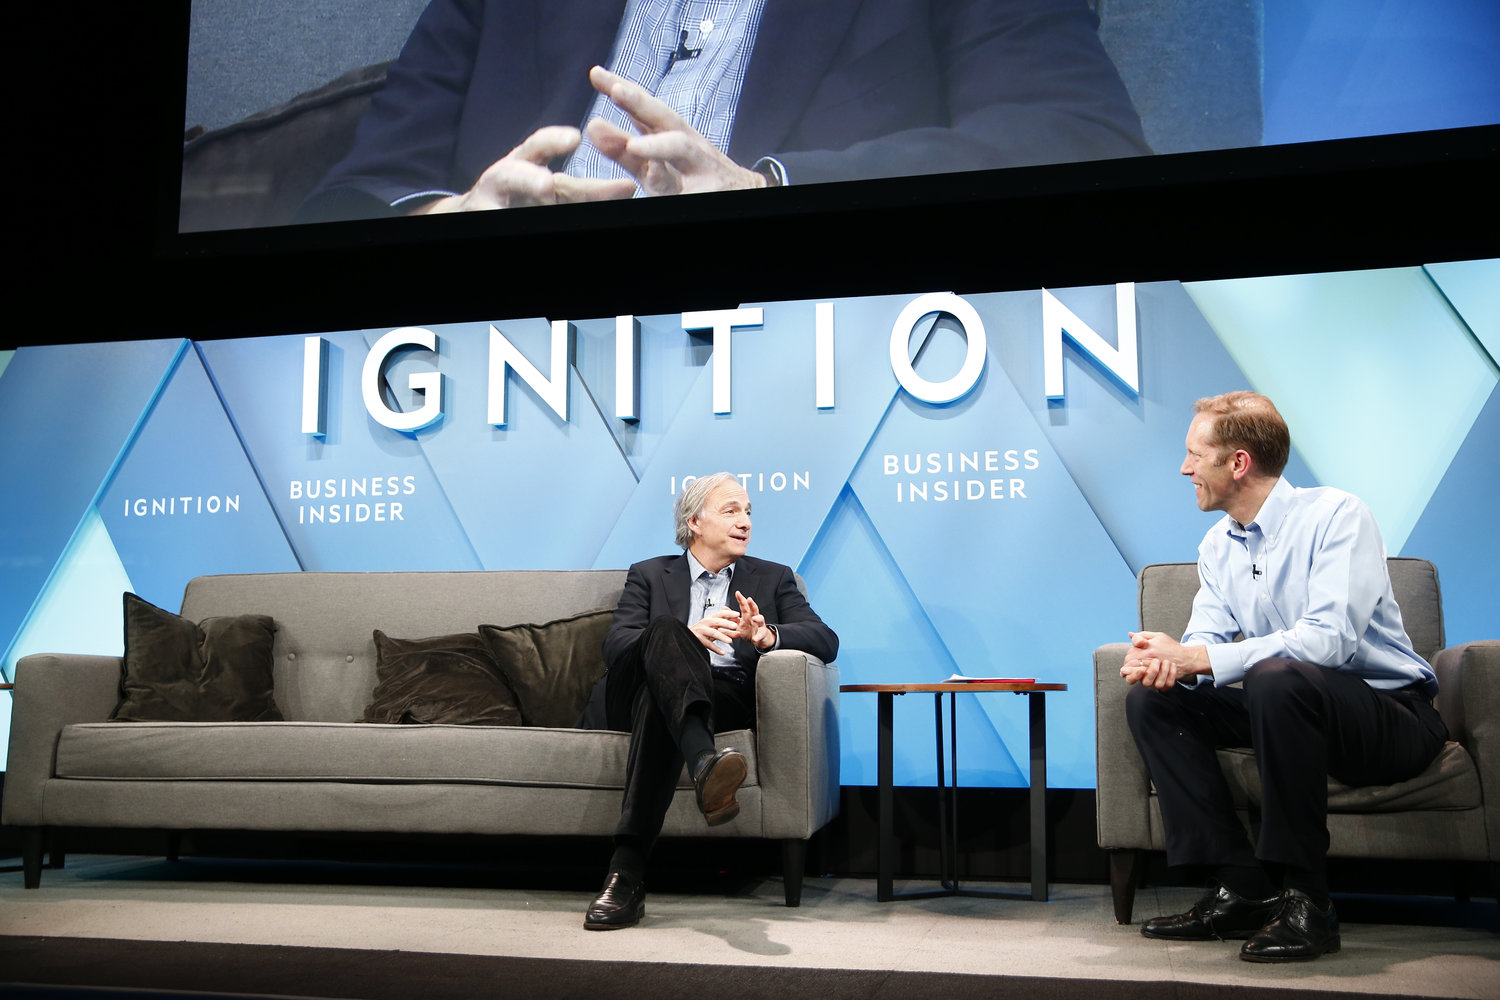 ignition 2018.jpeg